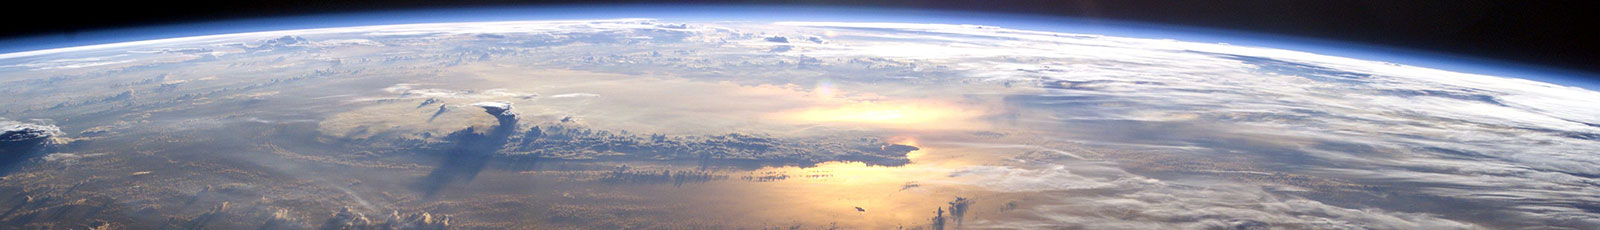 NASA-ISS07-sunrise-pacific-ocean-1600px